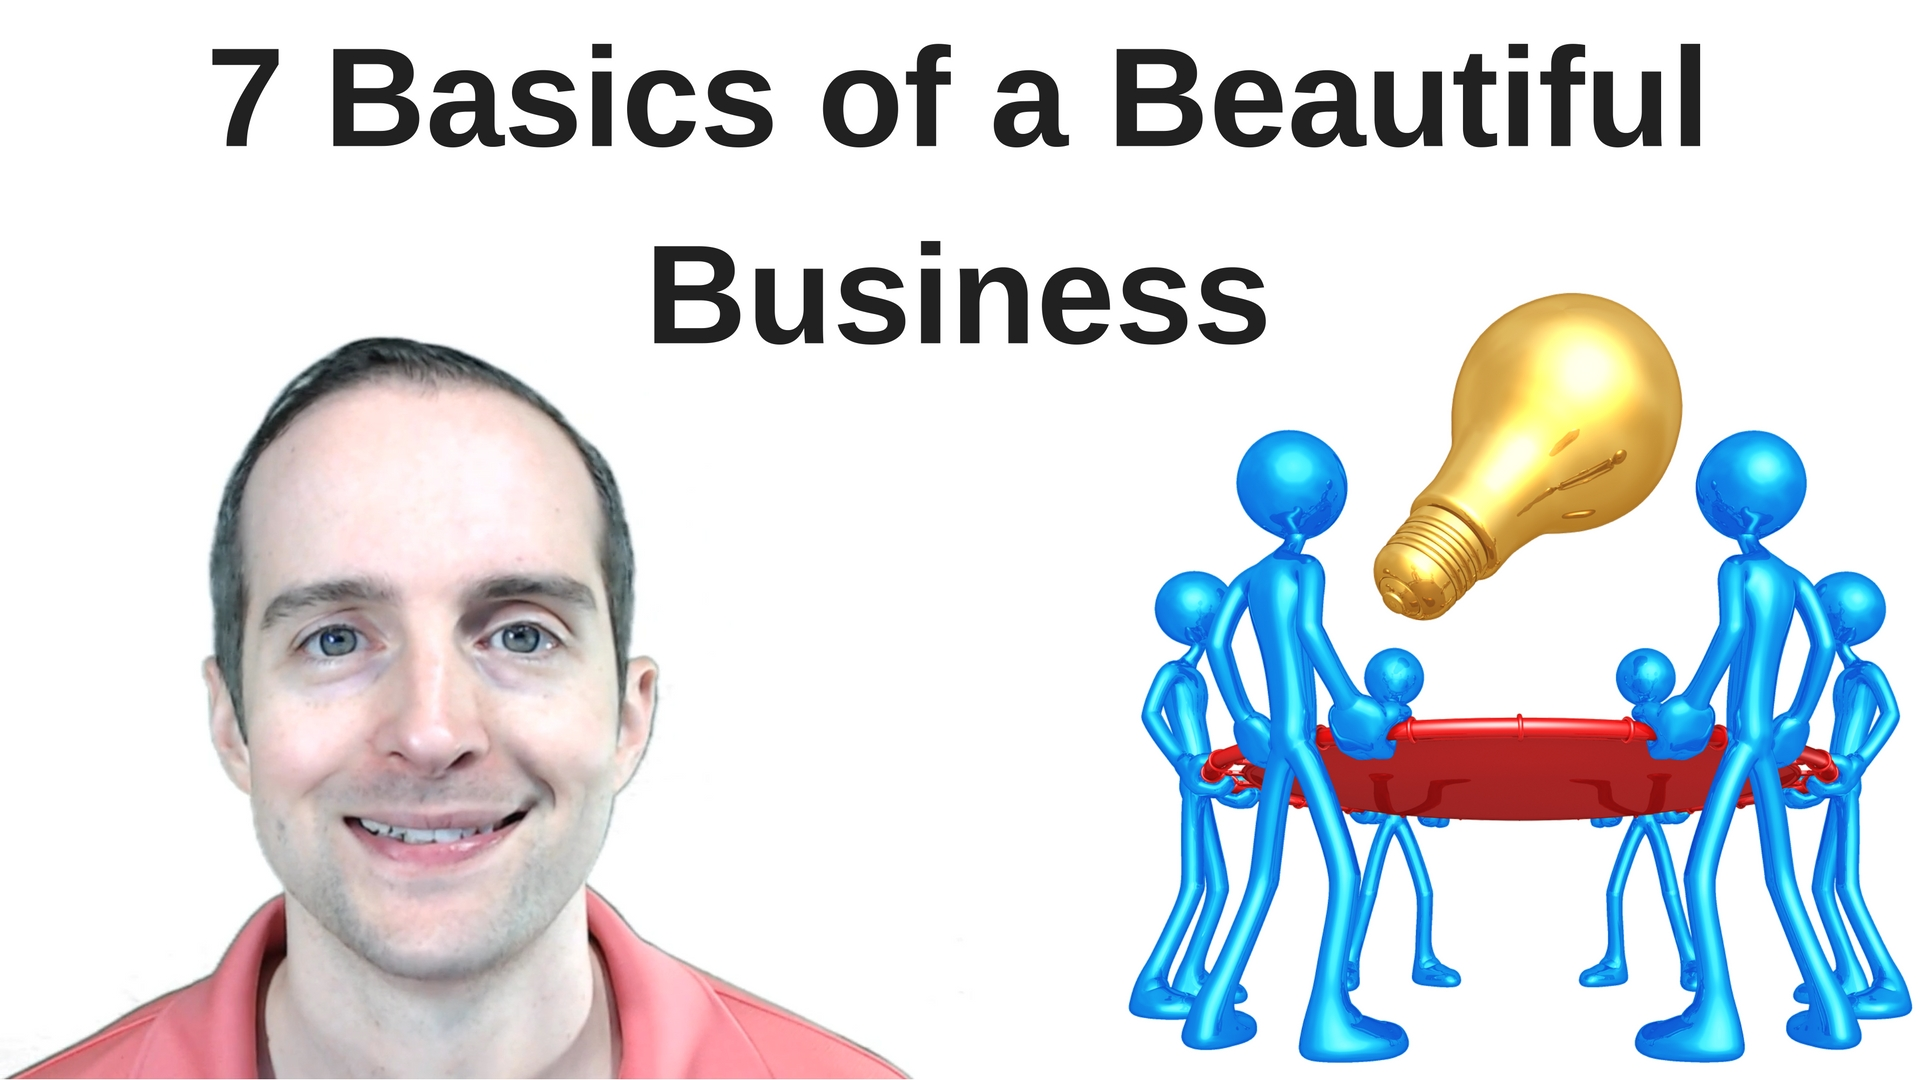 The 7 Basics of a Beautiful Business Learned with 7 Painful Failures as an Entrepreneur Online!